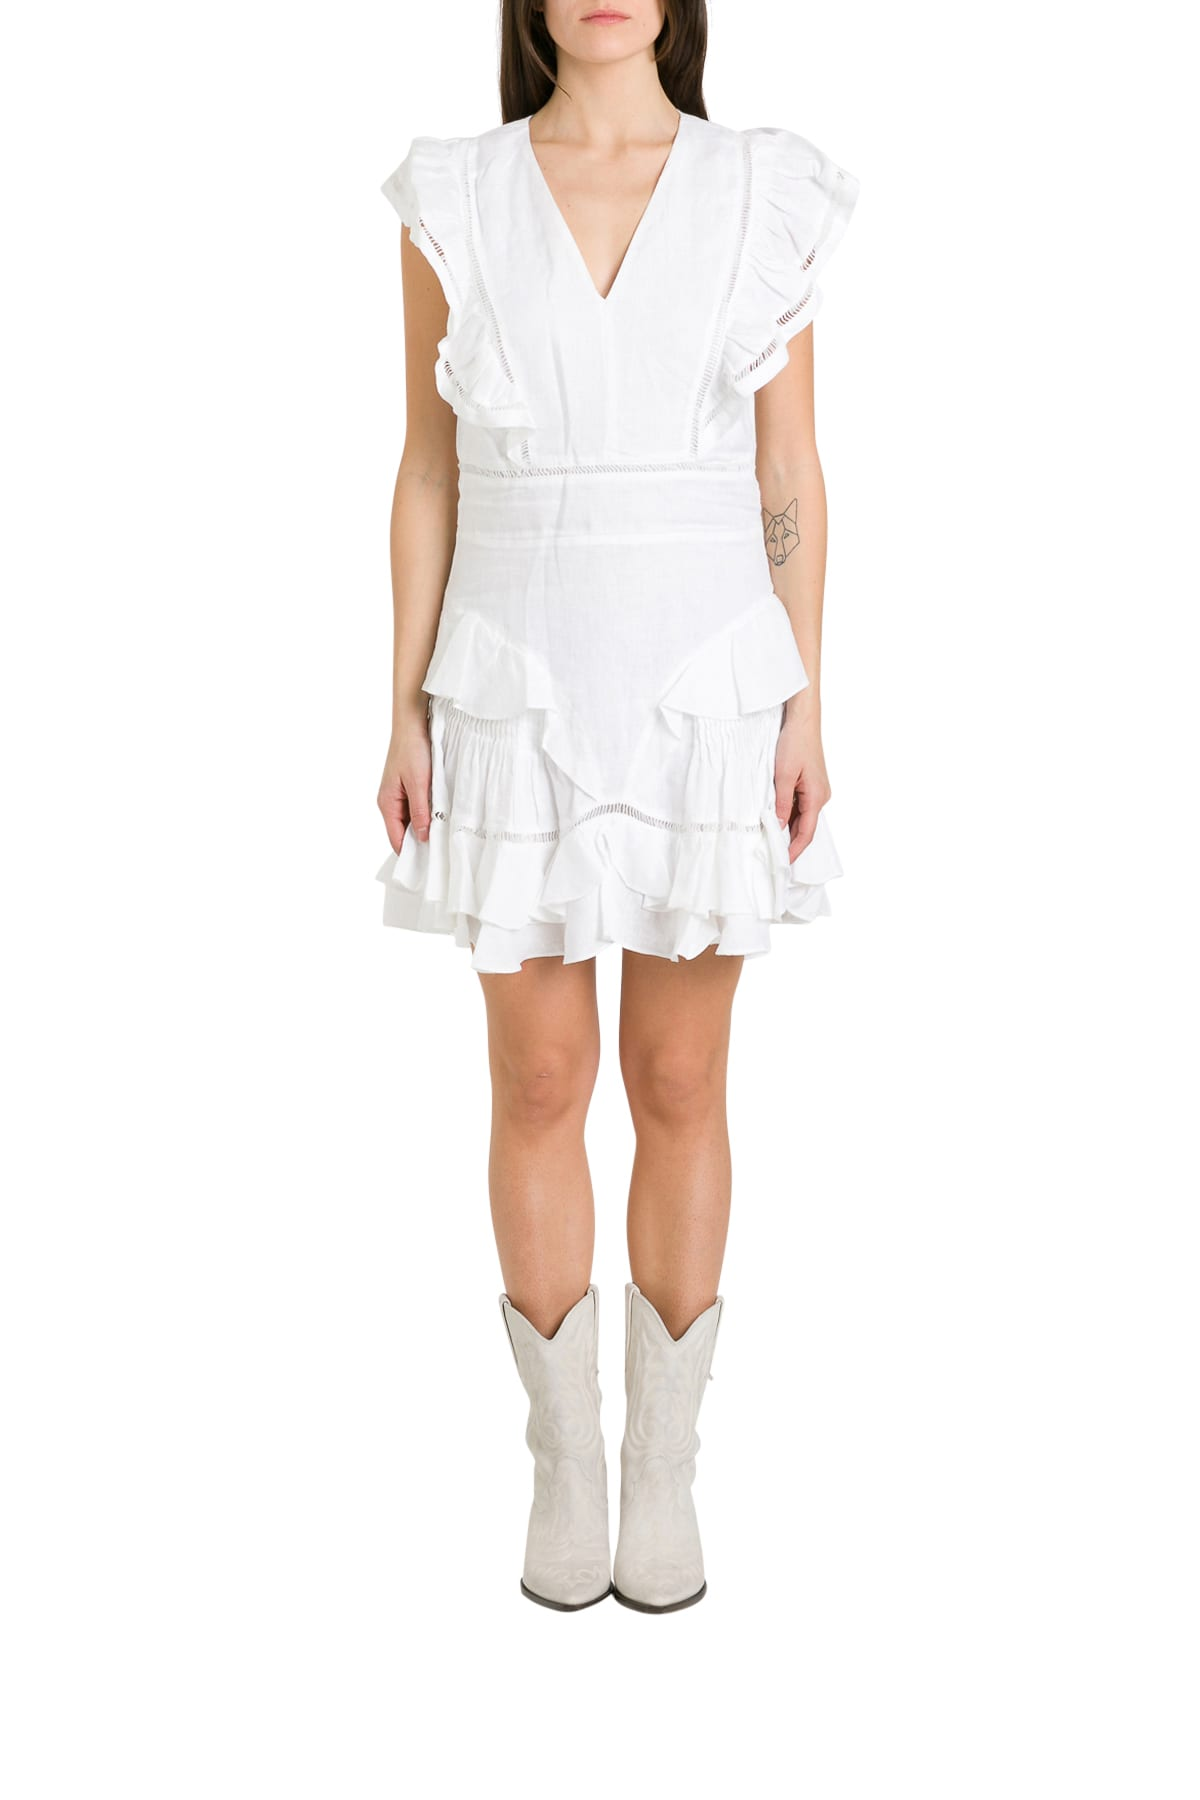 Buy Isabel Marant Étoile Audrey Flounced Dress online, shop Isabel Marant Étoile with free shipping